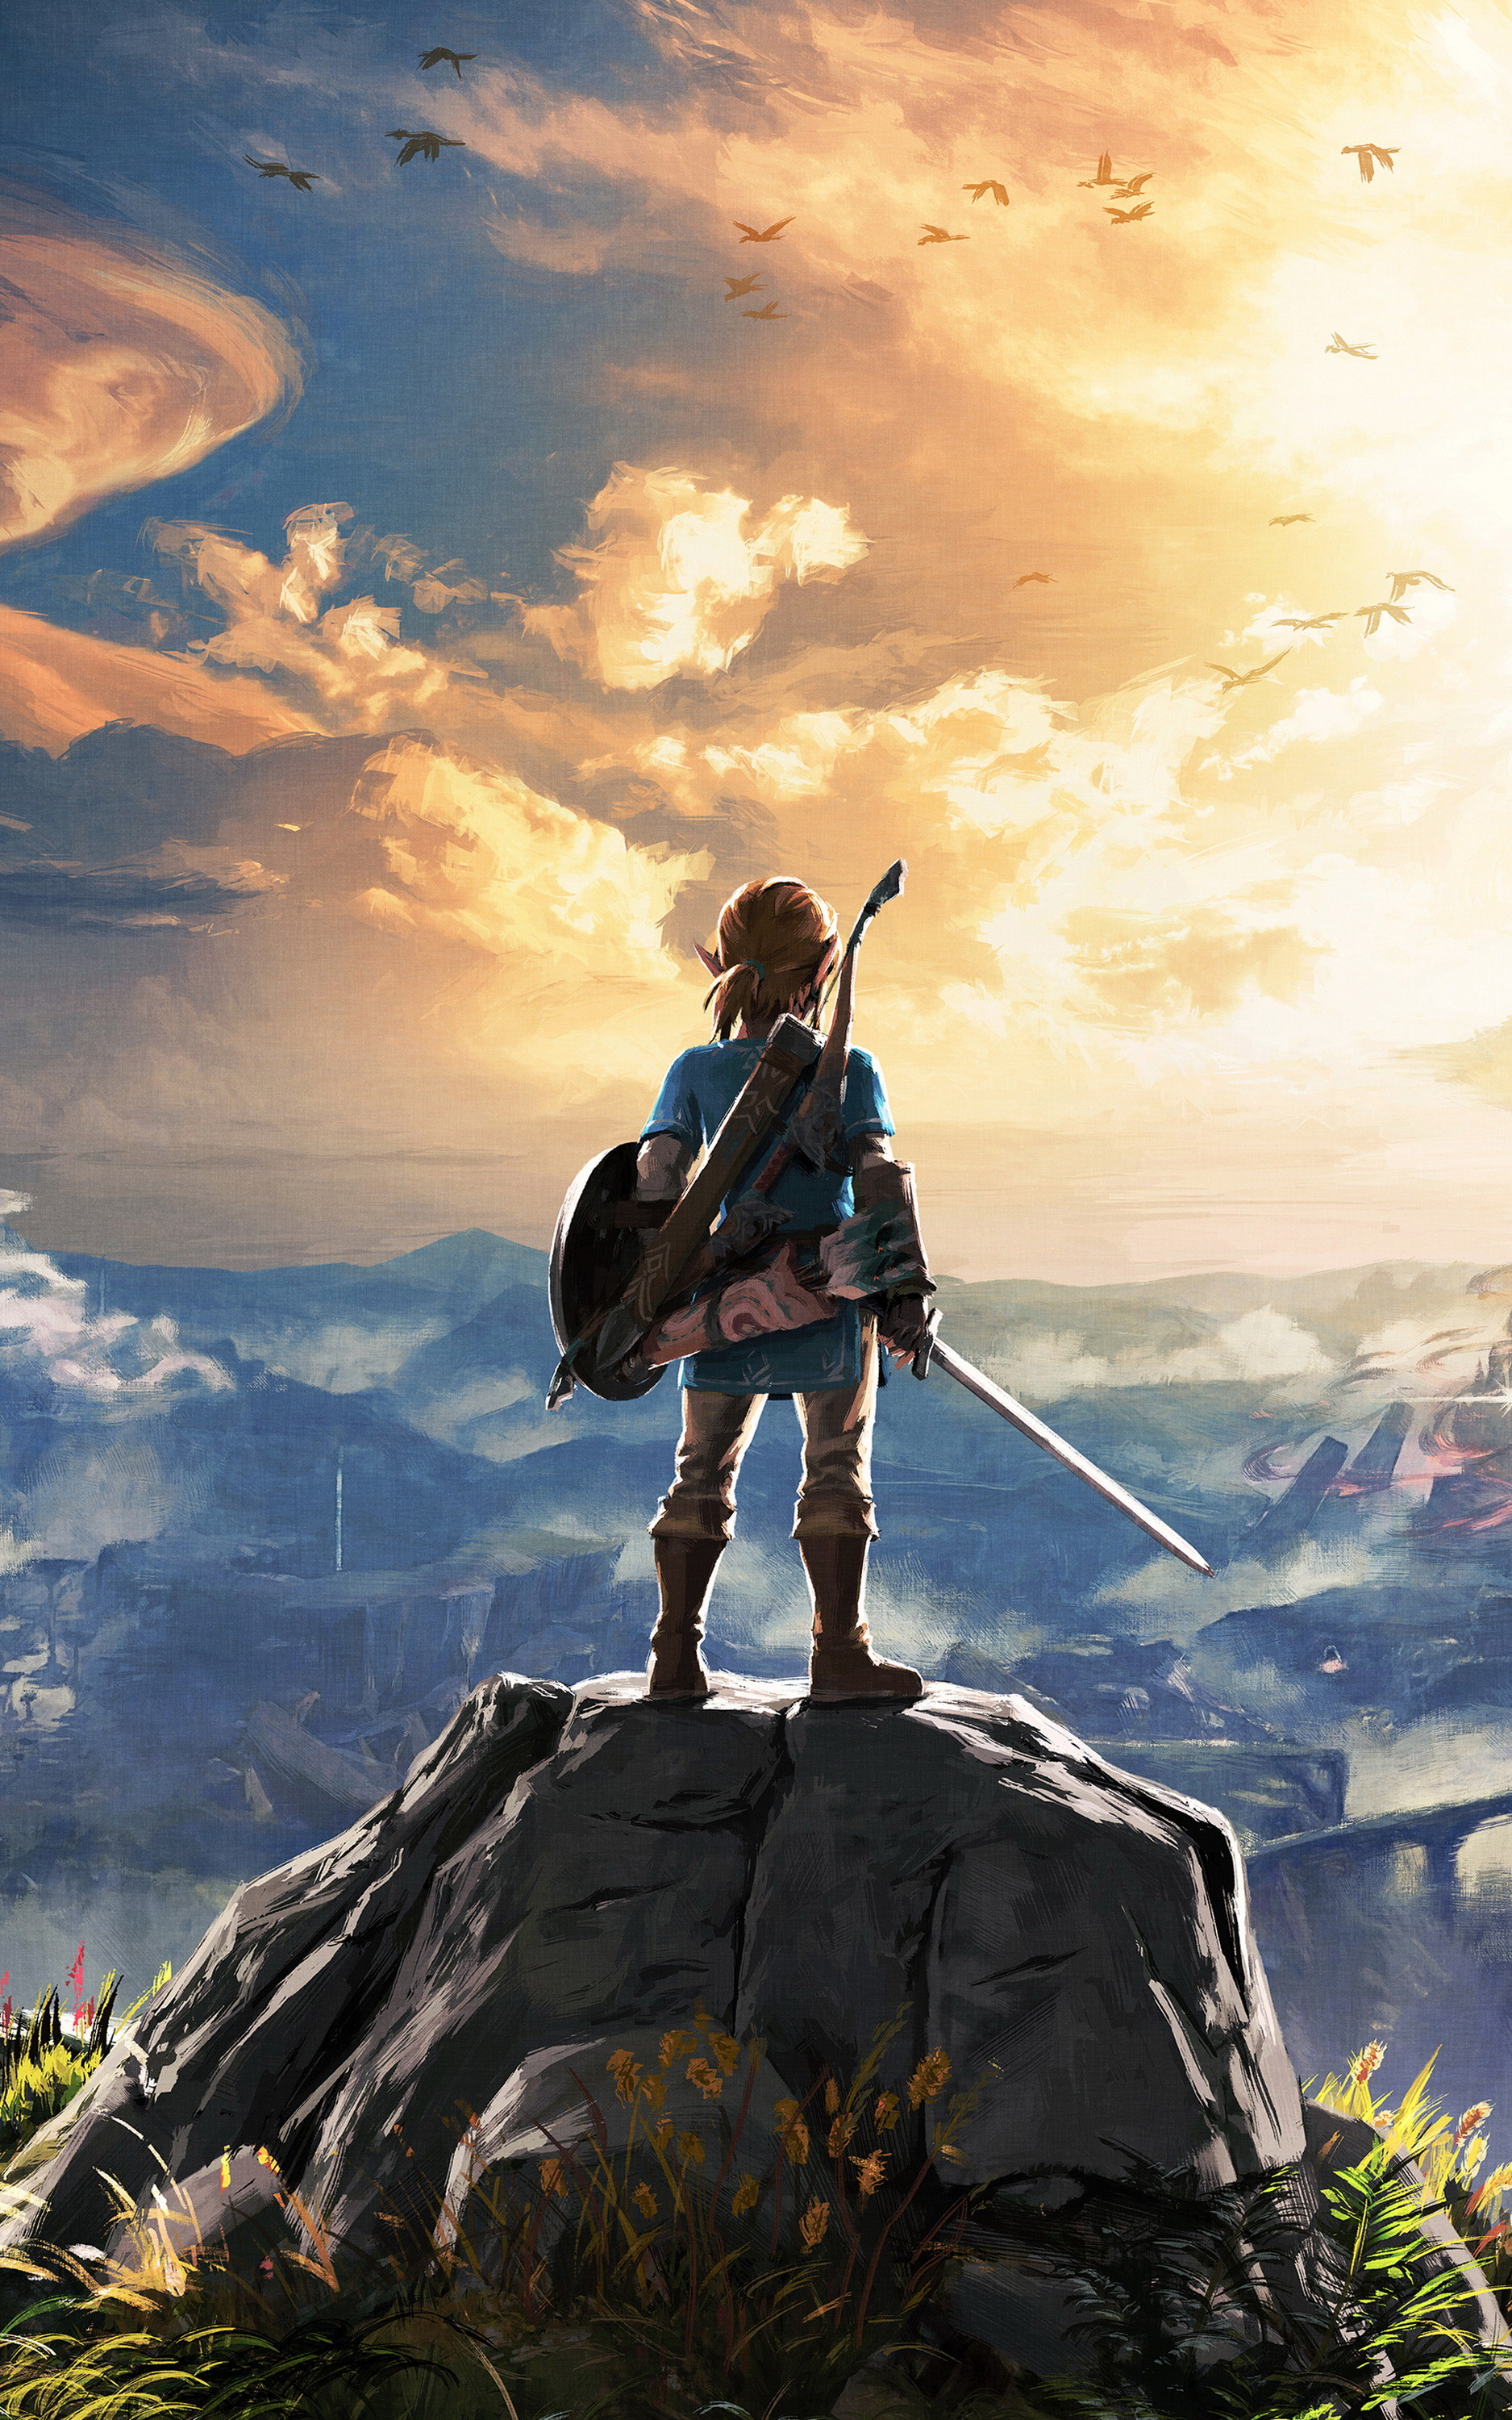 Res: 1875x3000, Breath of the Wild https://imgur.com/7auFaDB If the Witcher is getting  adapted, why won't this?!